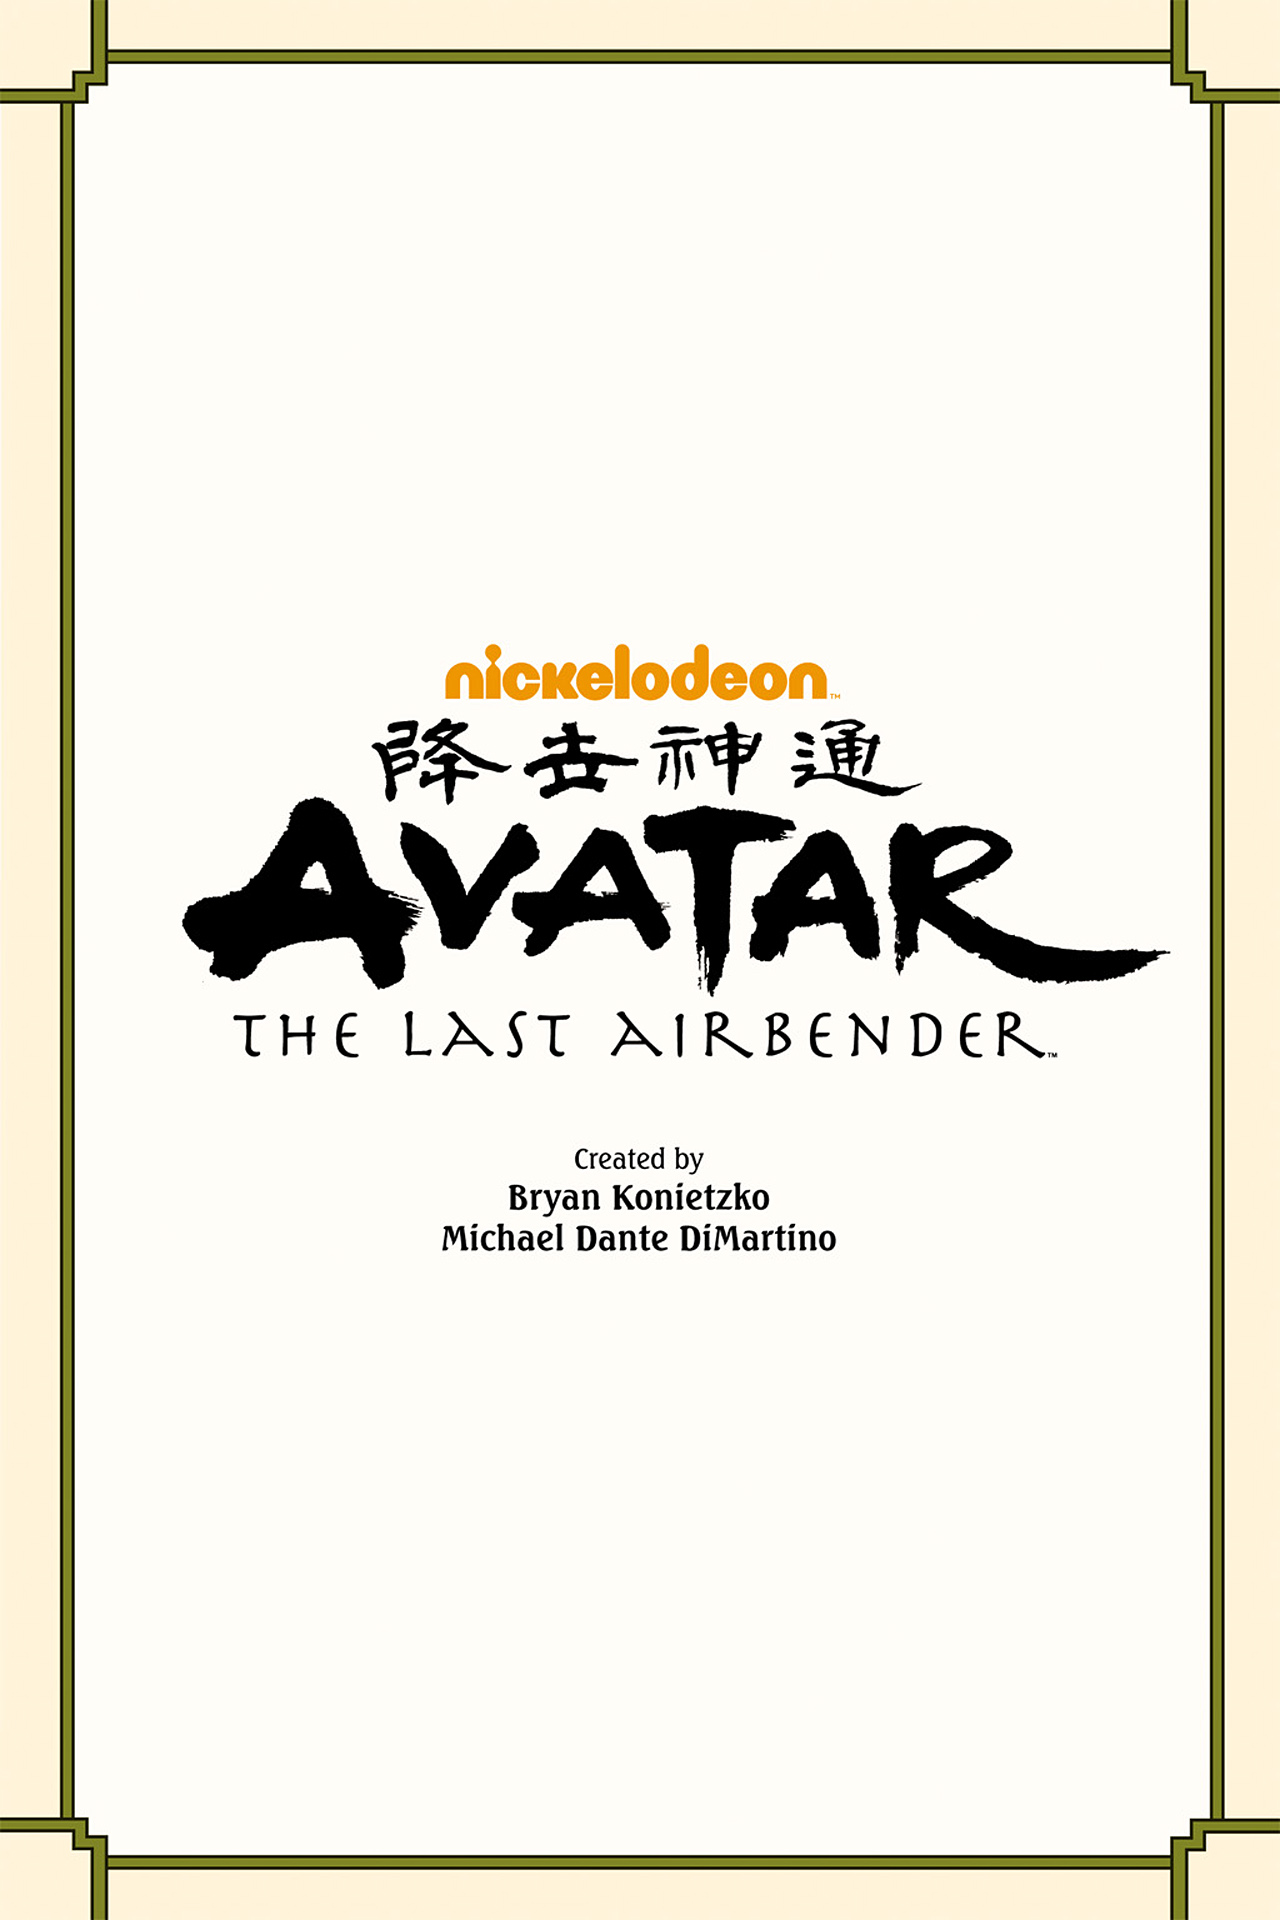 Nickelodeon Avatar: The Last Airbender - The Lost Adventures chap full pic 2